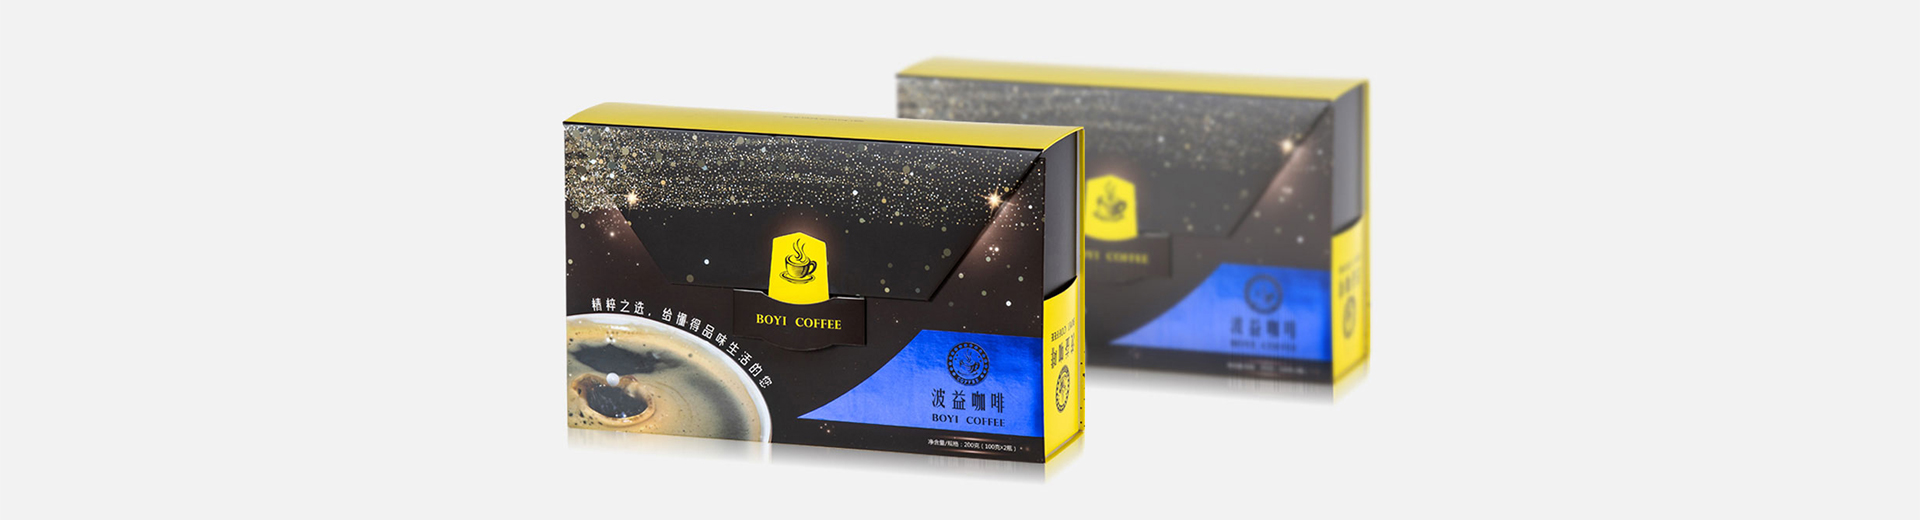 Coffee Packaging box